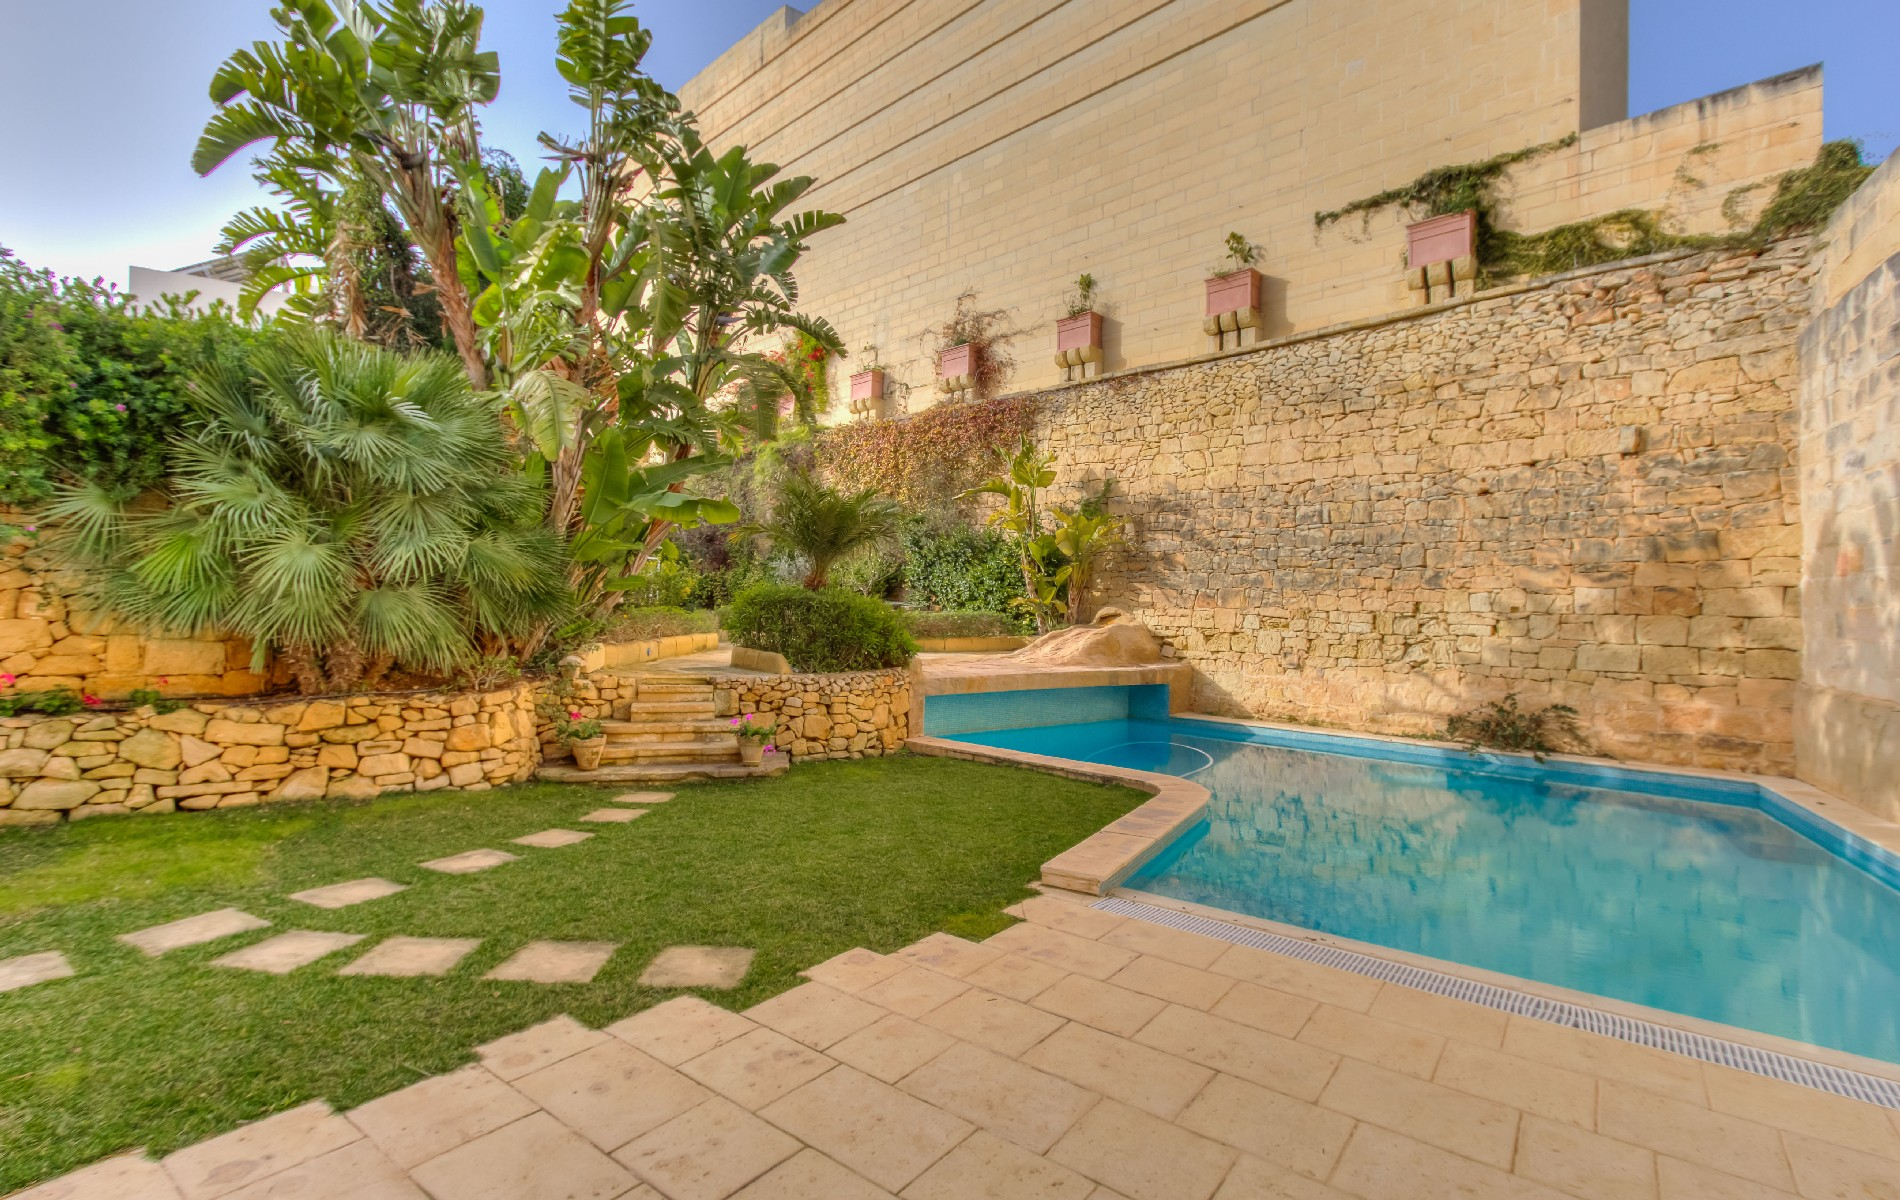 Townhouse for Sale at Beautifully Converted Townhouse Balzan, Central Malta